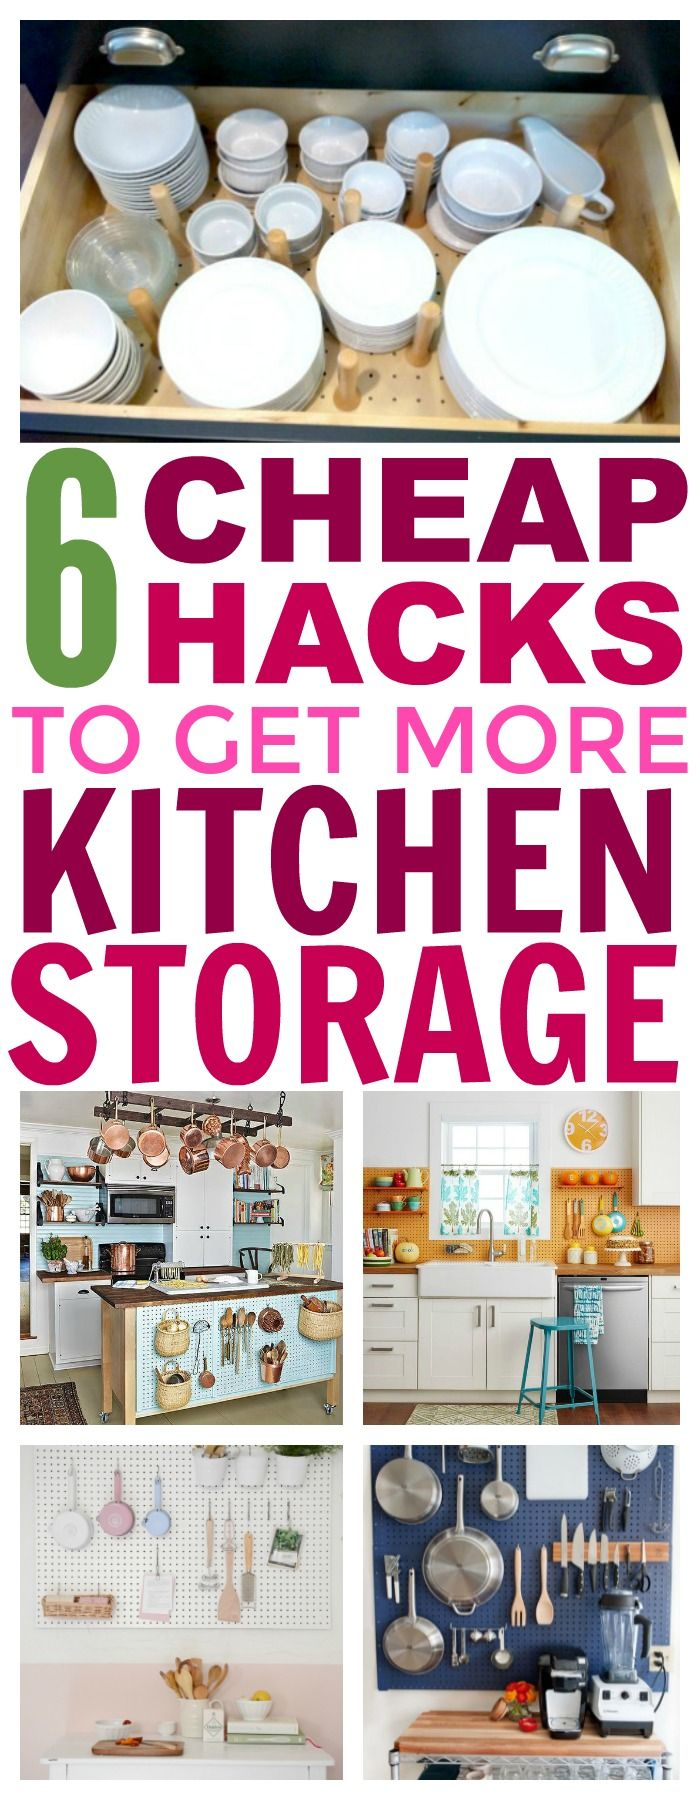 6 Cheap Ways To Create More Storage In Your Kitchen - That Vintage Life